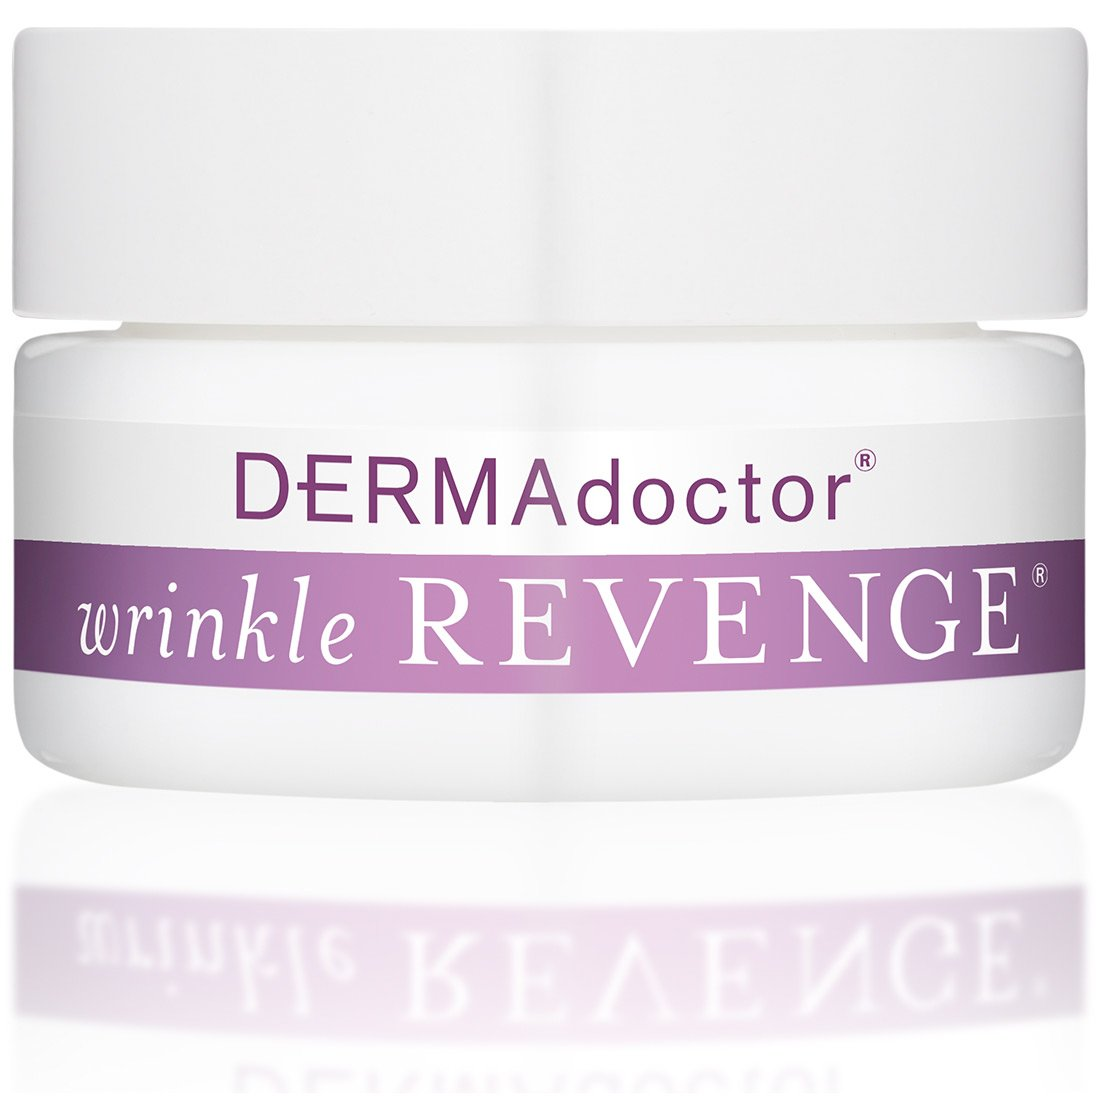 Dermadoctor Wrinkle Revenge Rescue and Protect Eye Balm, 0.5 Oz Fab Products 174297